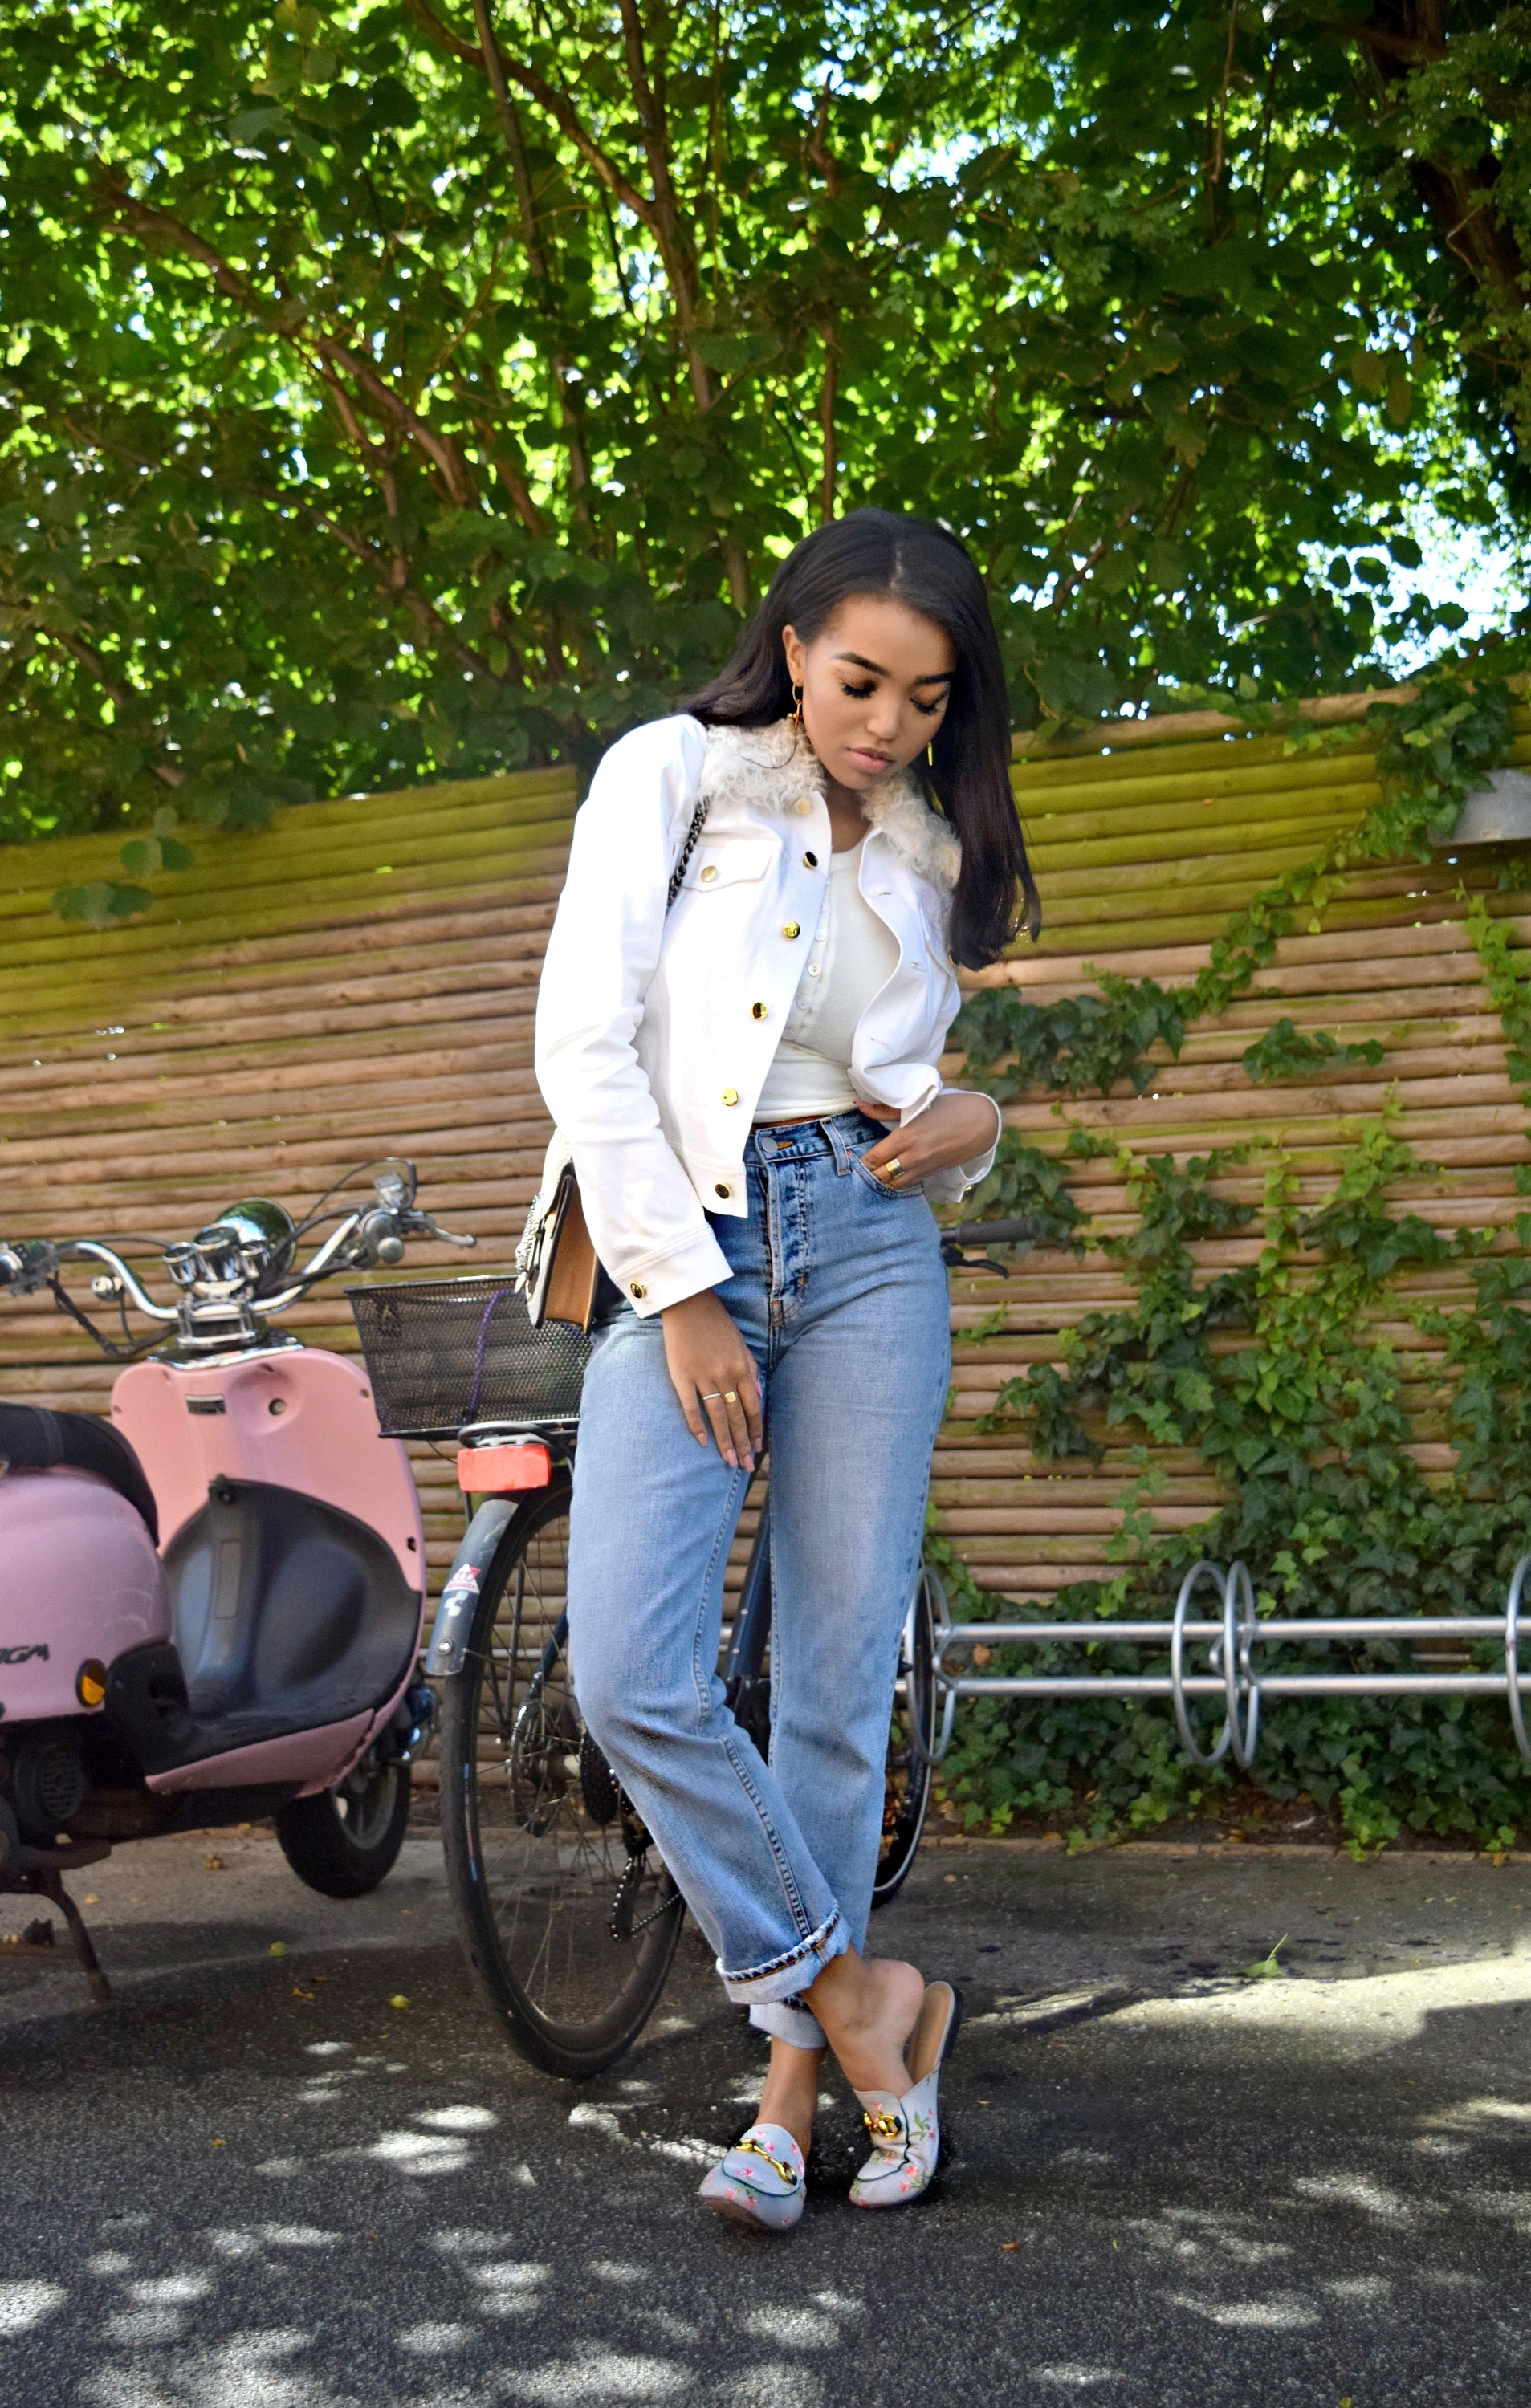 A Day In Charlottenlund // Copenhagen Denmark Travel Diary // Are You Am I Top // Mom Jeans // Gucci Slippers & Dionysus Bag // Derek Lam 10 Crosby Jacket // Los Angeles Fashion Blogger Daphne Blunt: To Style, With Love